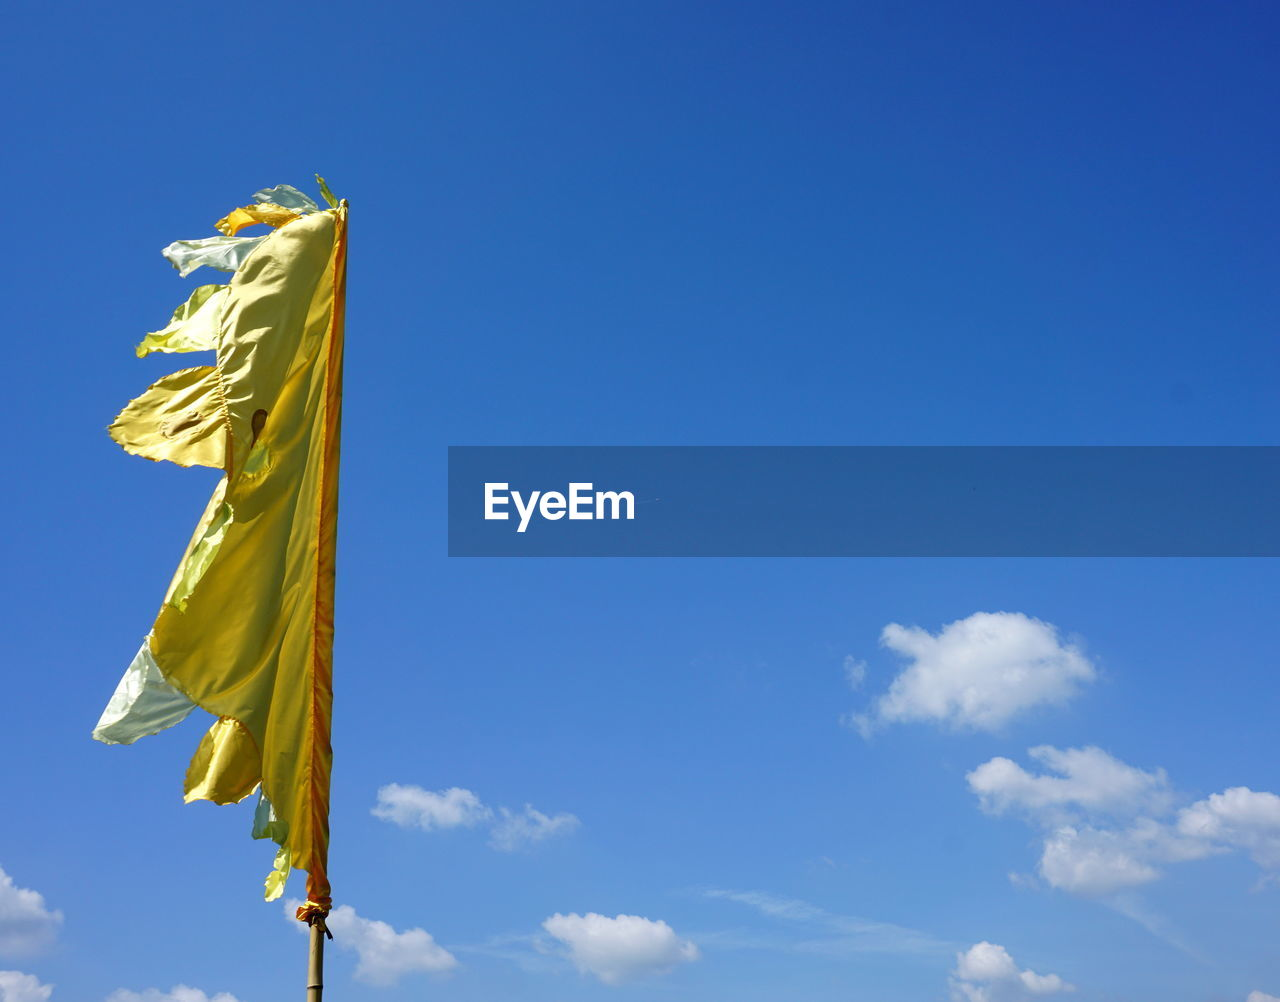 sky, blue, low angle view, cloud - sky, yellow, day, no people, nature, flag, copy space, art and craft, outdoors, belief, textile, human representation, sunlight, patriotism, spirituality, representation, religion, wind